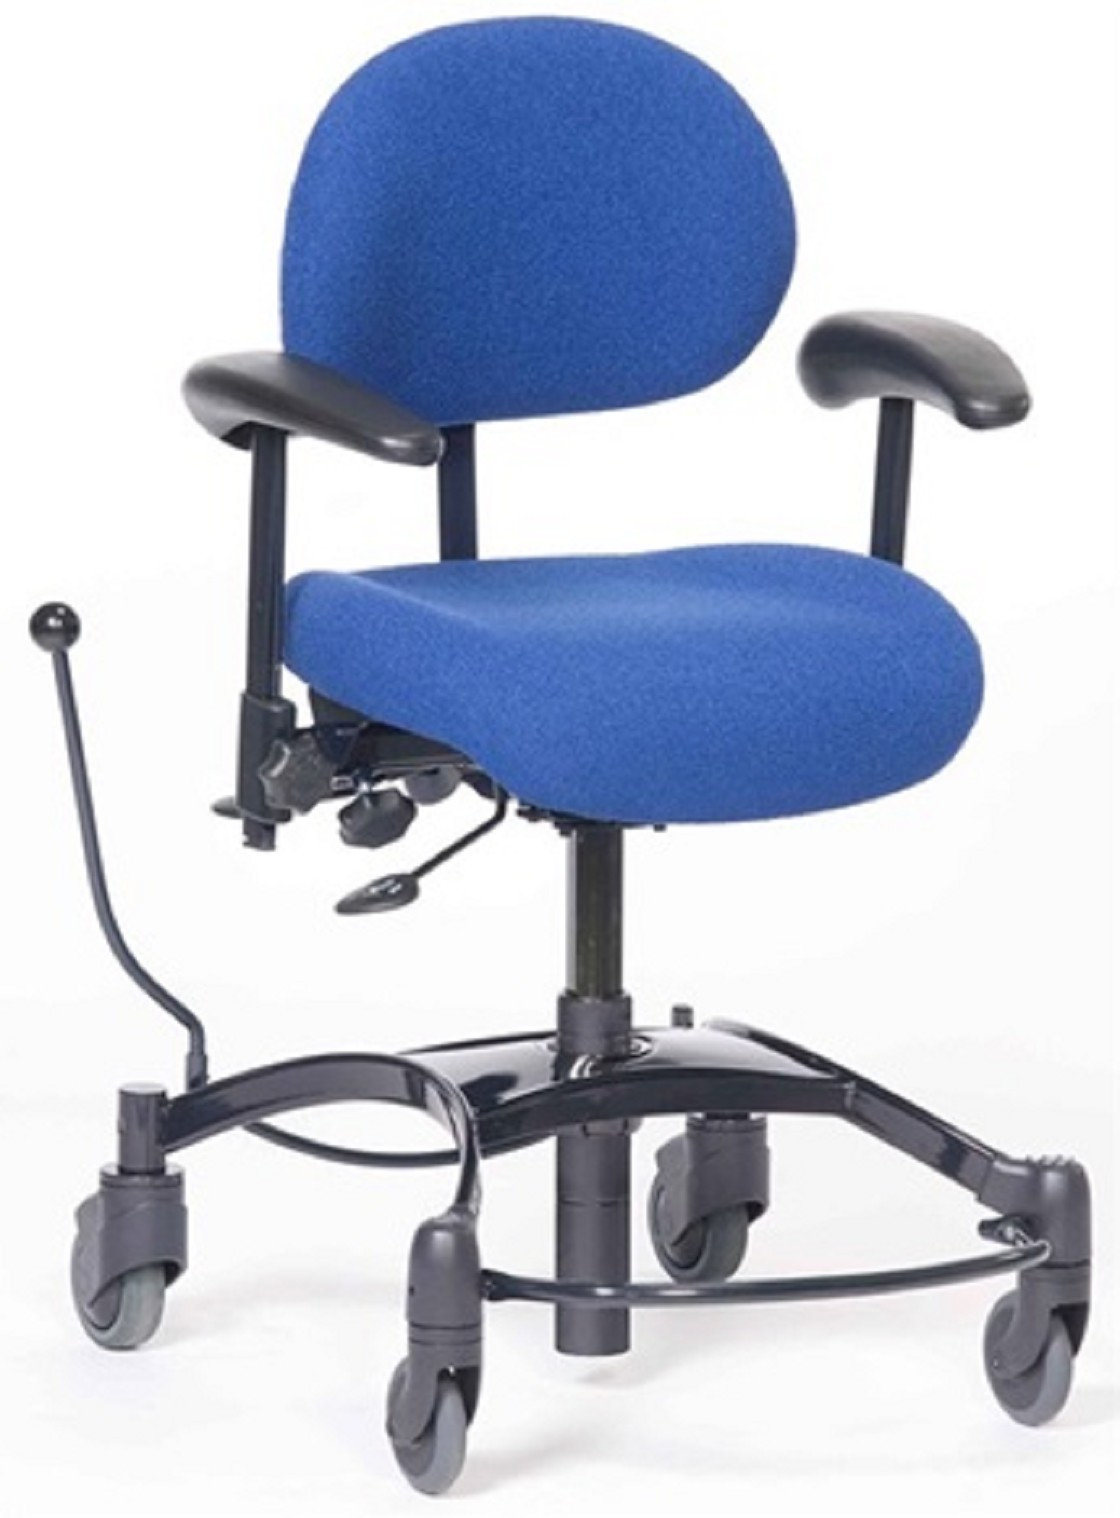 active sitting chair